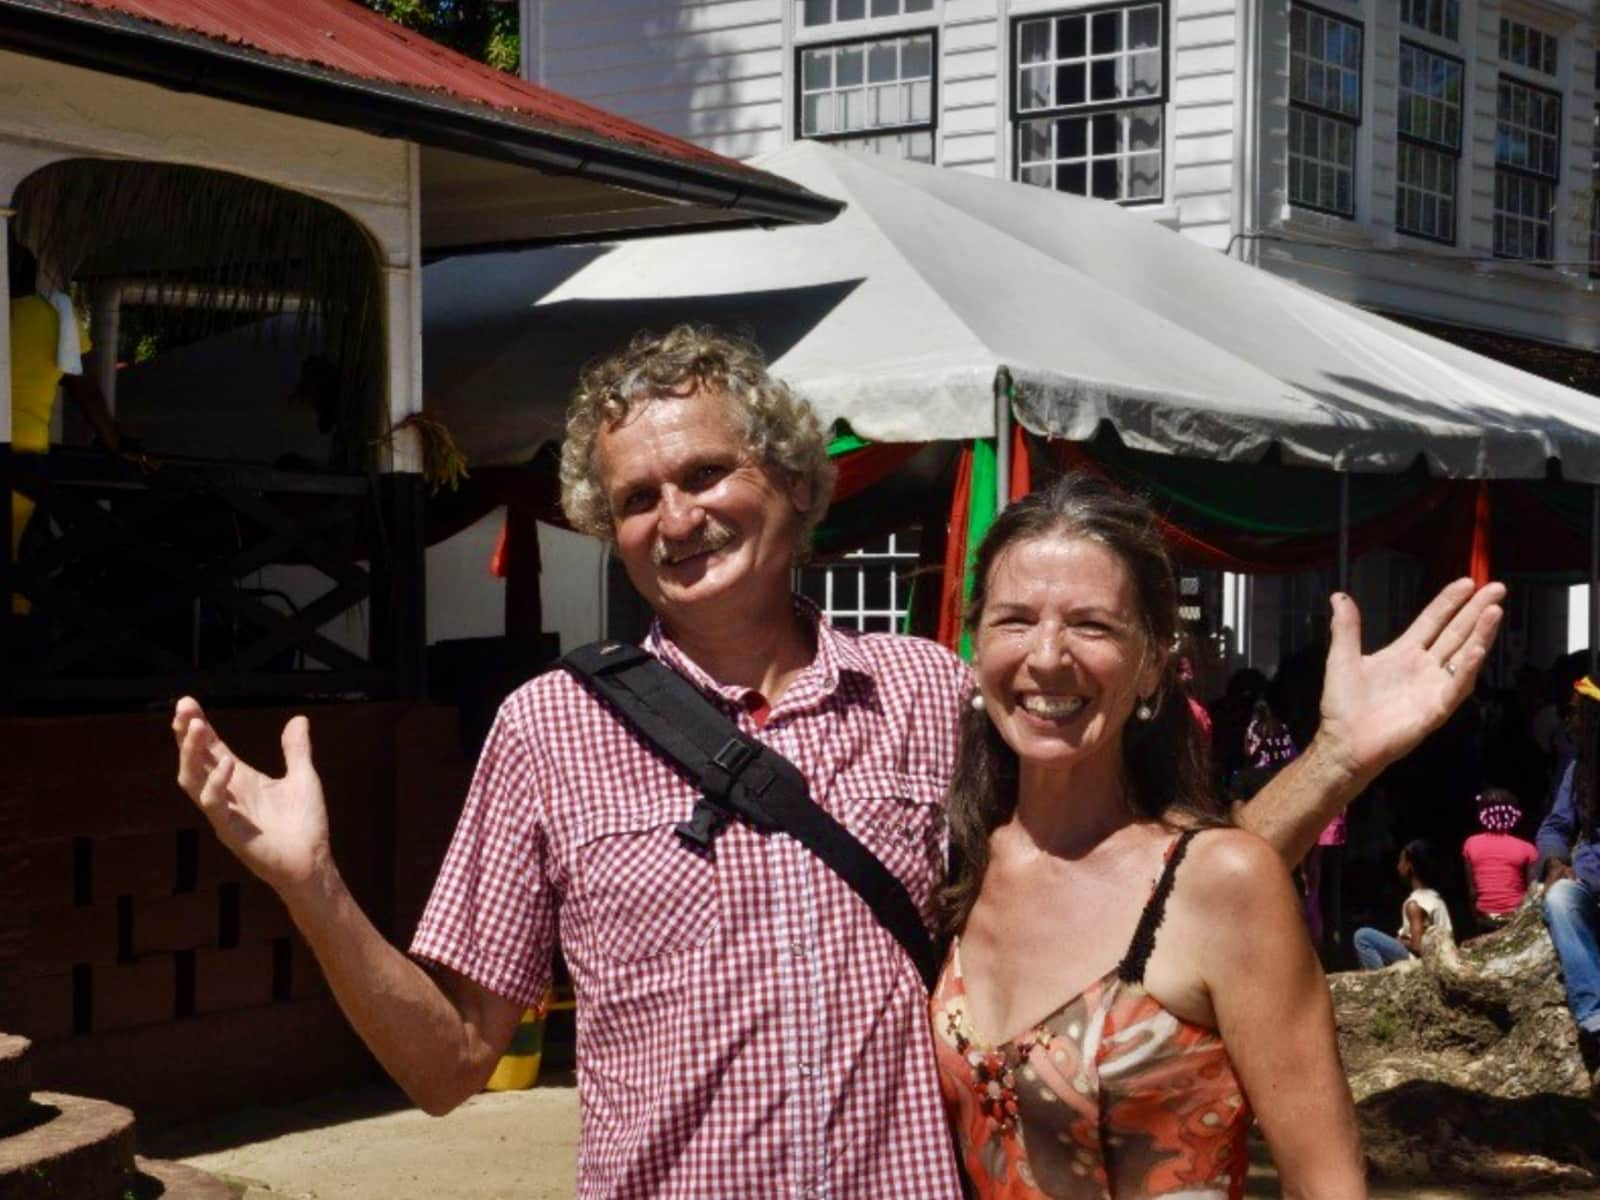 Peter & Trudy from Venray, Netherlands